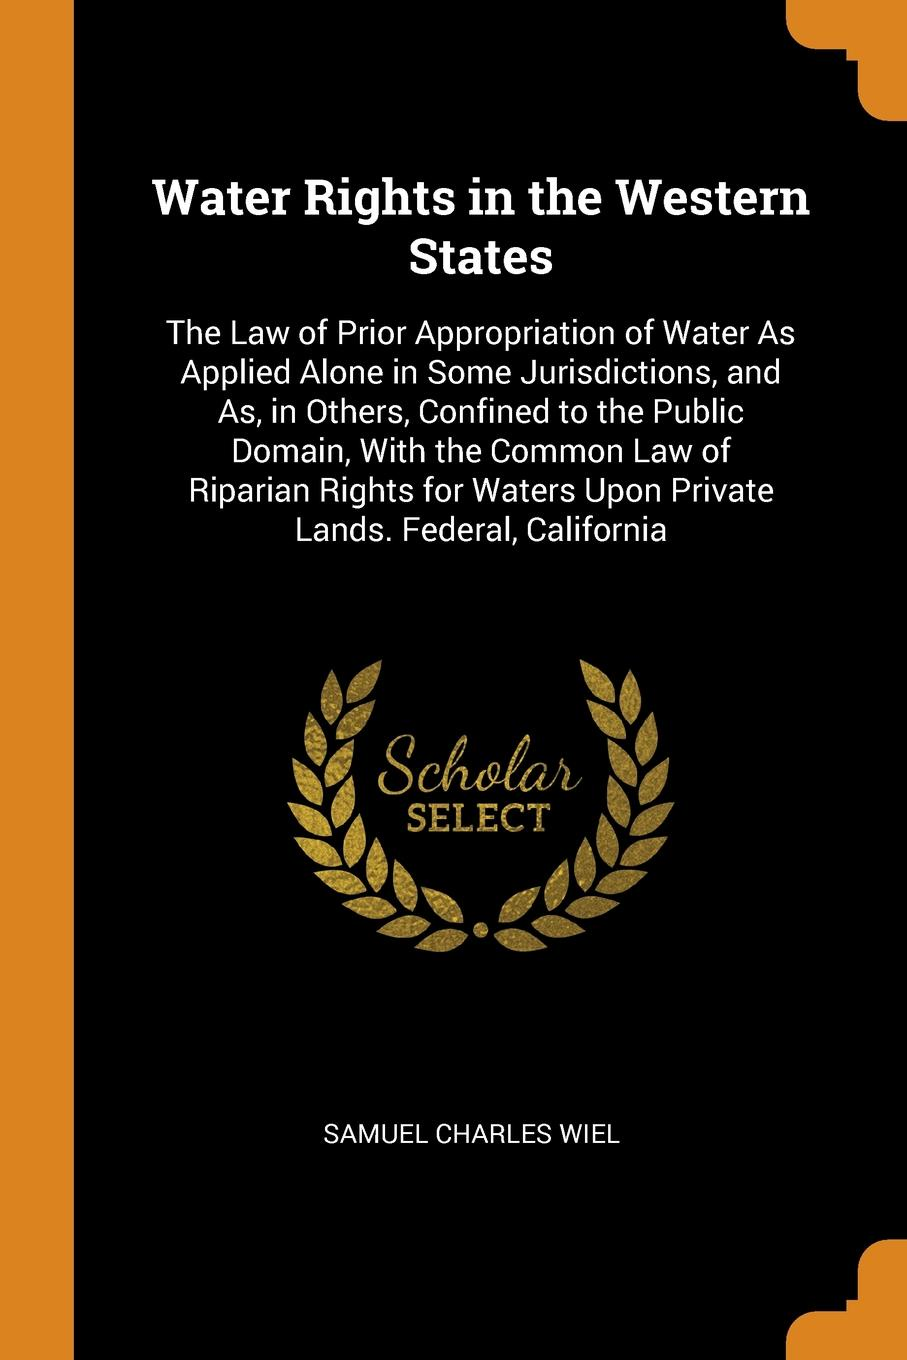 где купить Samuel Charles Wiel Water Rights in the Western States. The Law of Prior Appropriation of Water As Applied Alone in Some Jurisdictions, and As, in Others, Confined to the Public Domain, With the Common Law of Riparian Rights for Waters Upon Private Lands. Federal, Ca... по лучшей цене